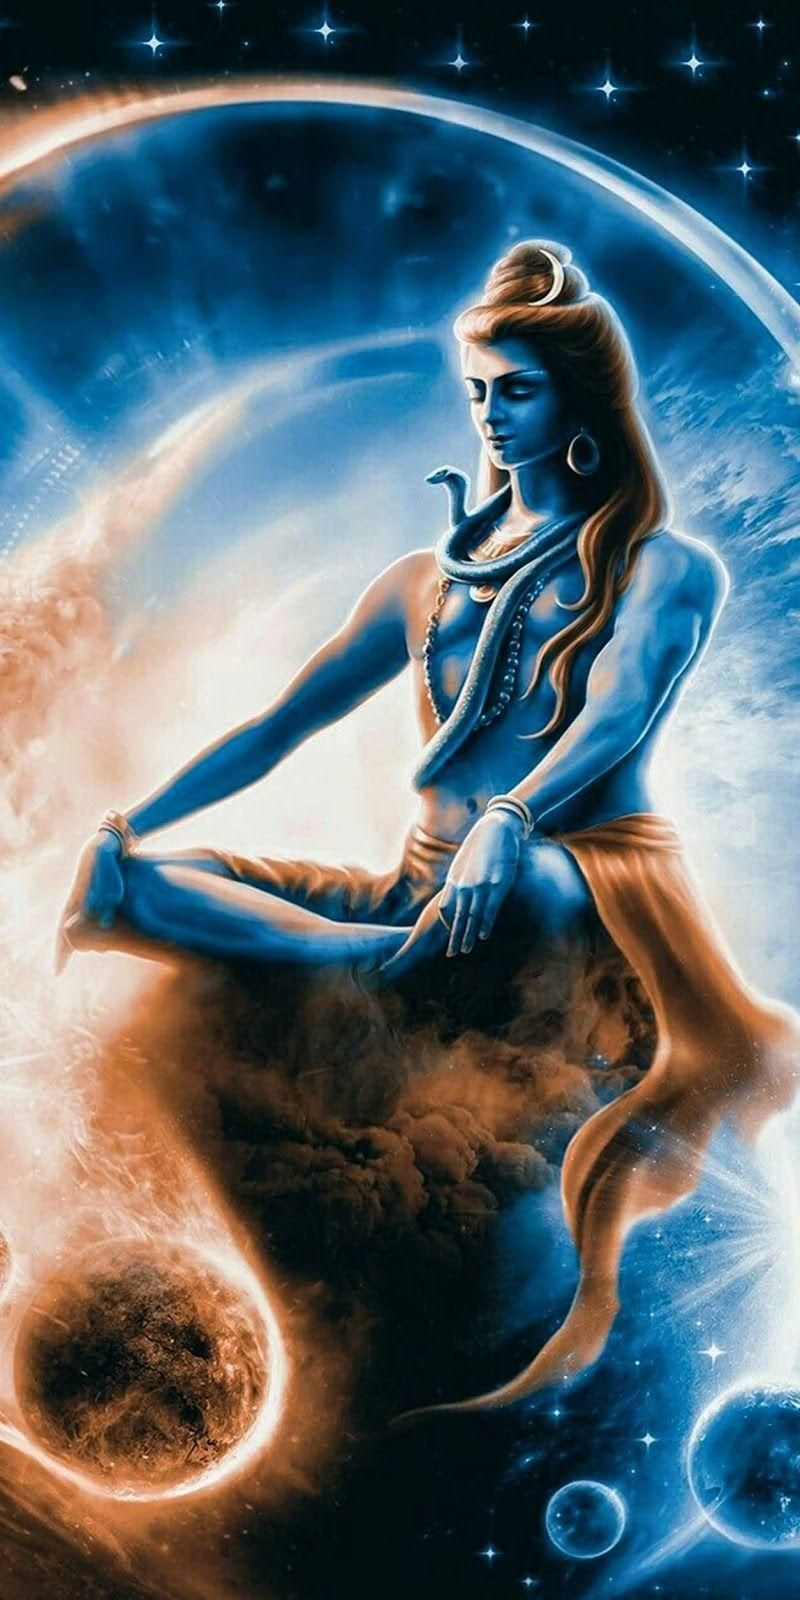 Free And High Quality Lord Shiva Hd Wallpaper Lord Shiva Hd Wallpaper Mahadev Hd Wallpaper Shiva Wallpaper Full screen angry 1080p lord shiva hd